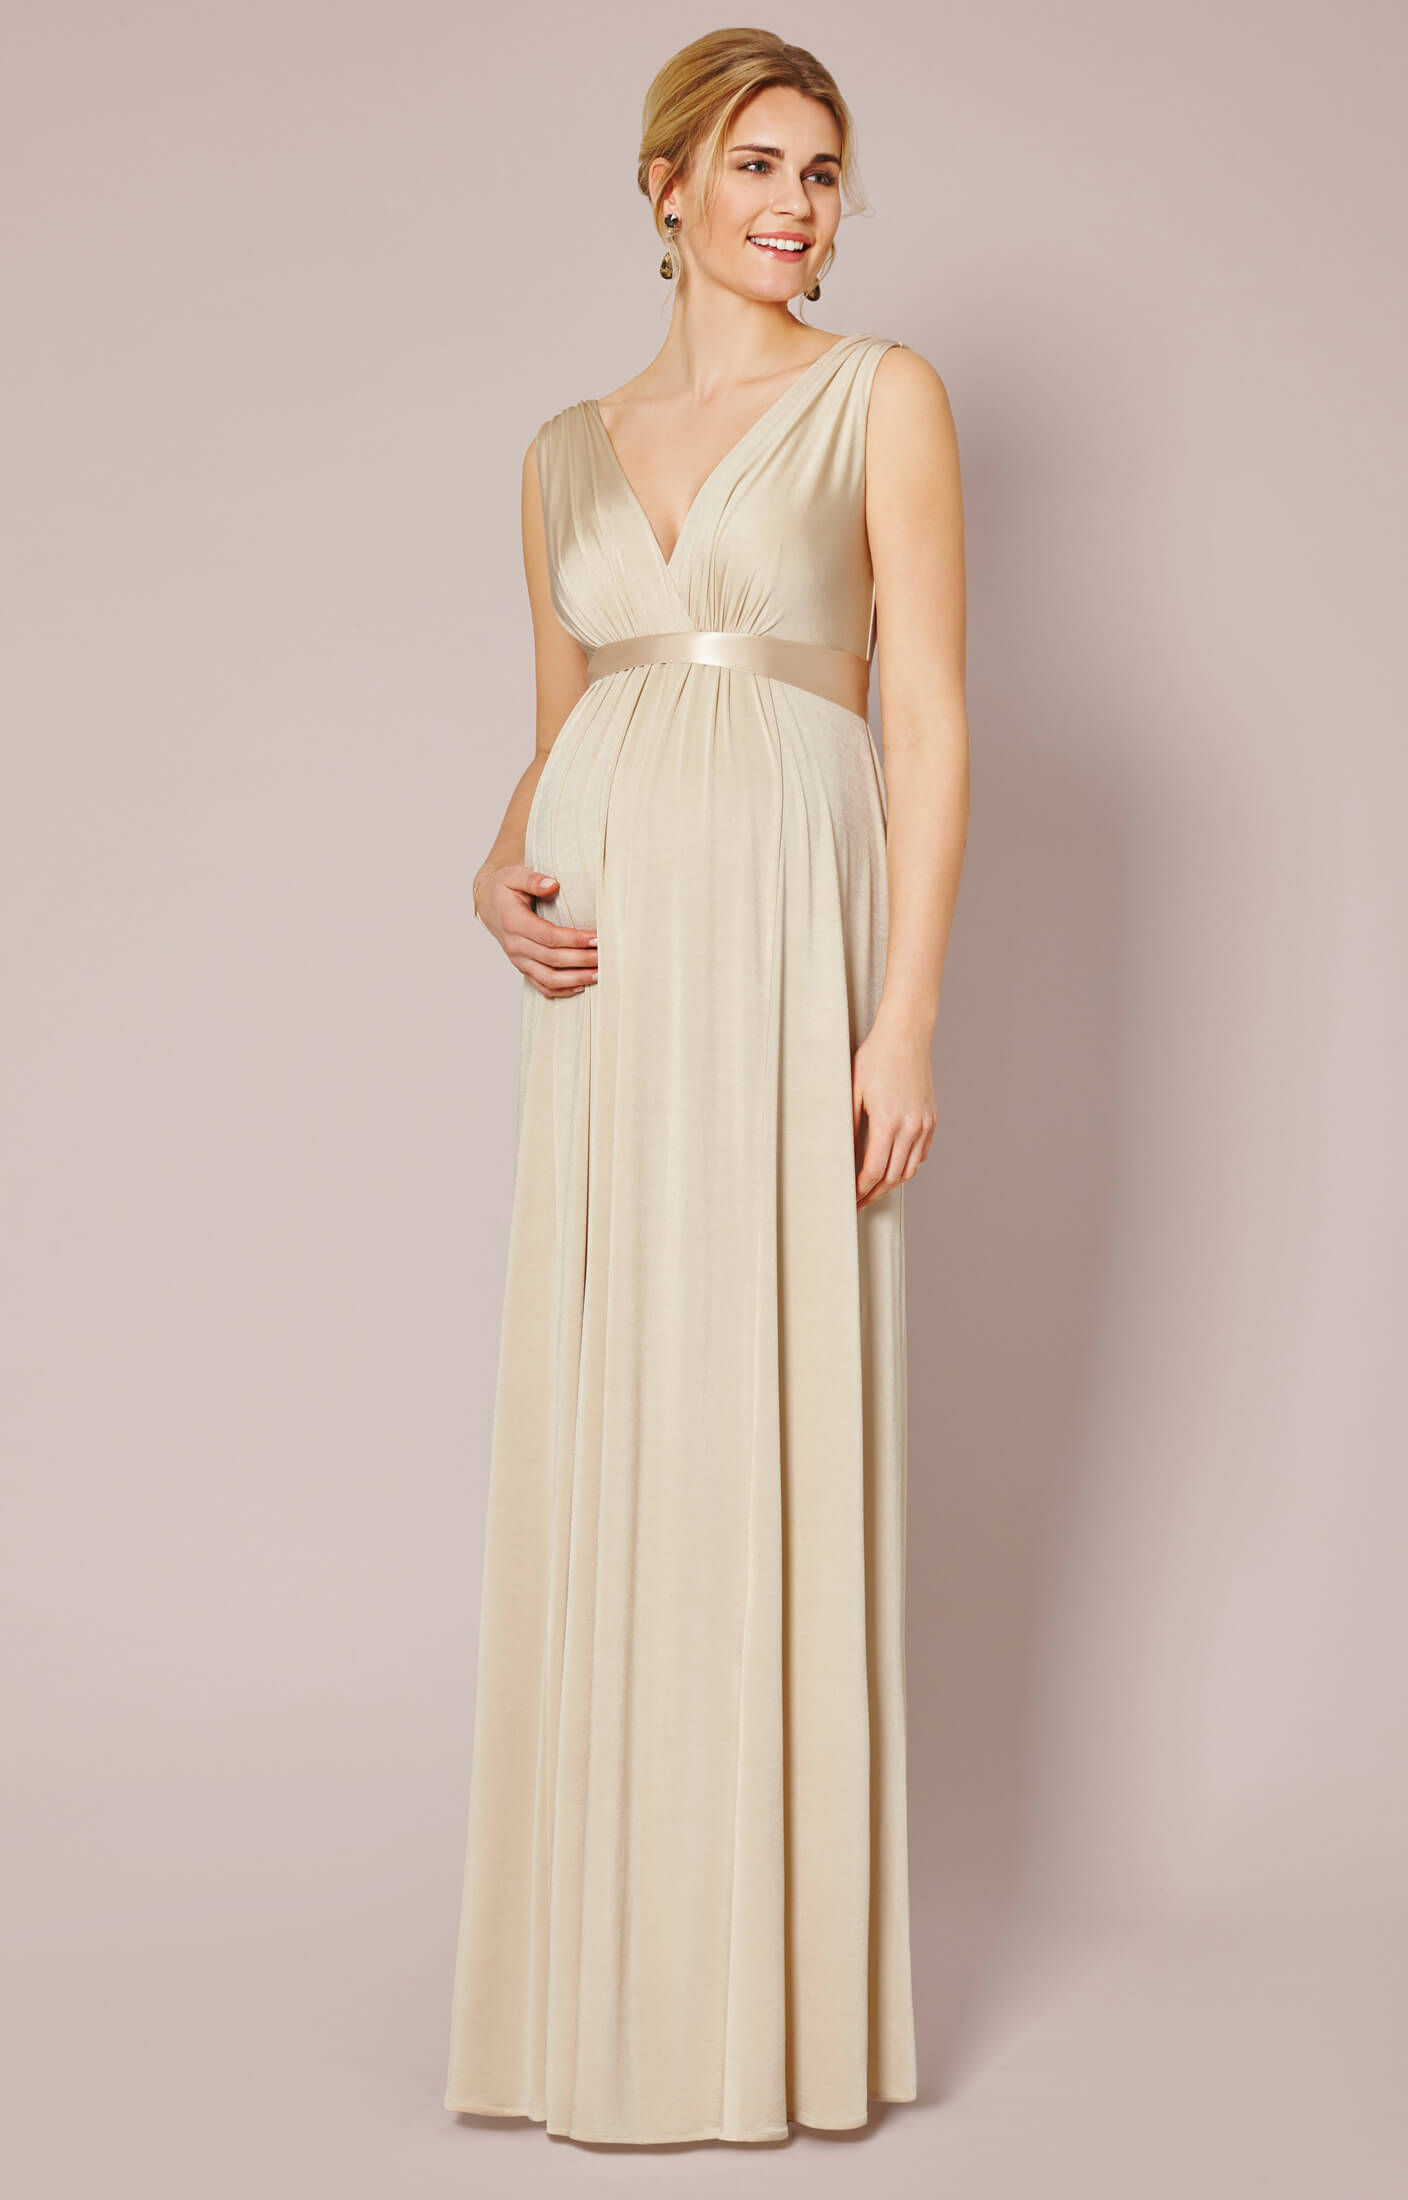 Anastasia maternity gown gold dust maternity wedding dresses anastasia maternity gown gold dust by tiffany rose ombrellifo Gallery